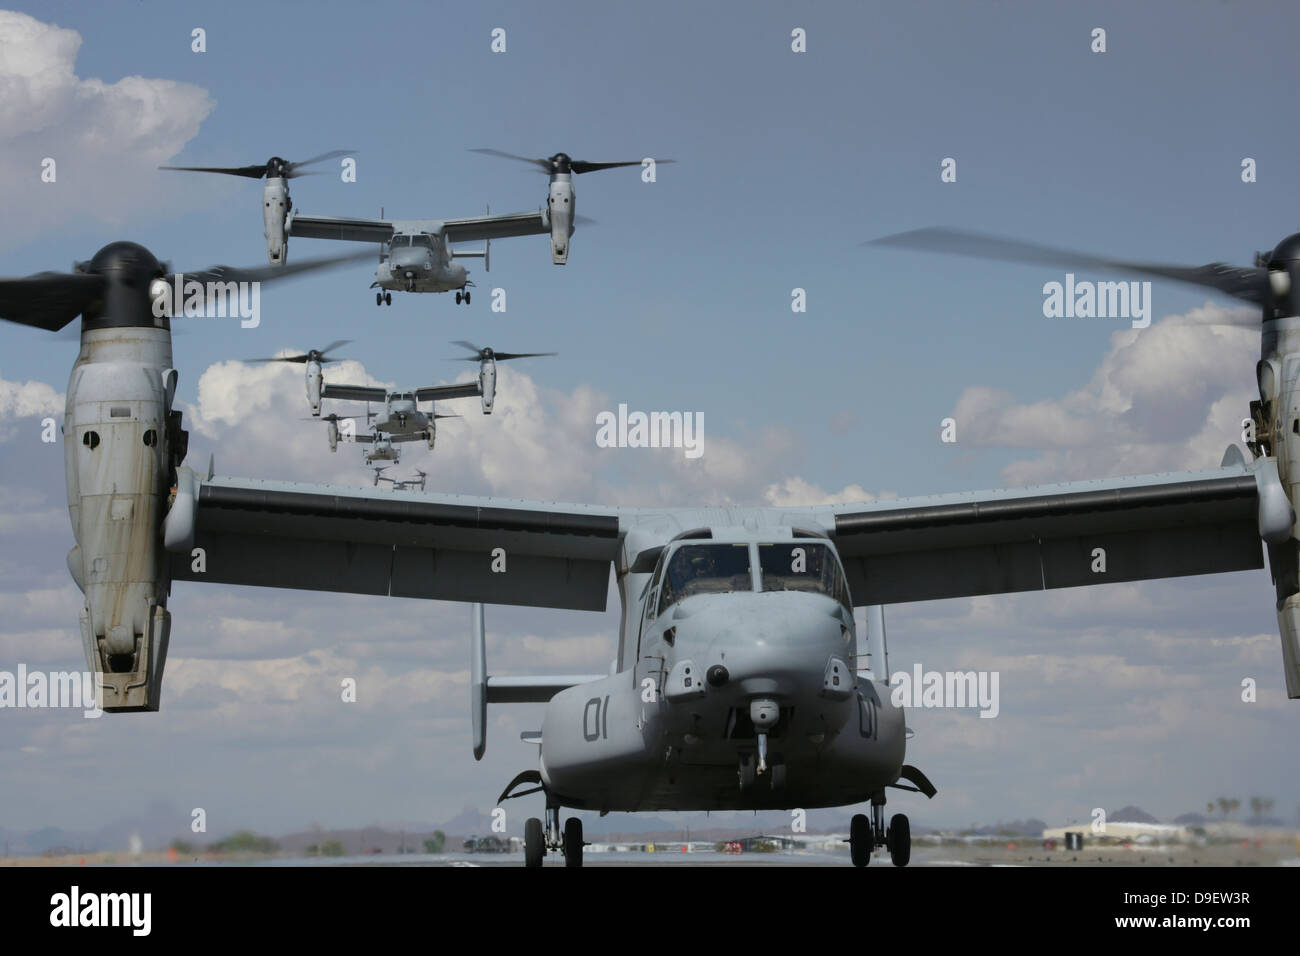 U.S. Marine Corps MV-22 Osprey tiltrotor aircraft prepare for landing. Stock Photo